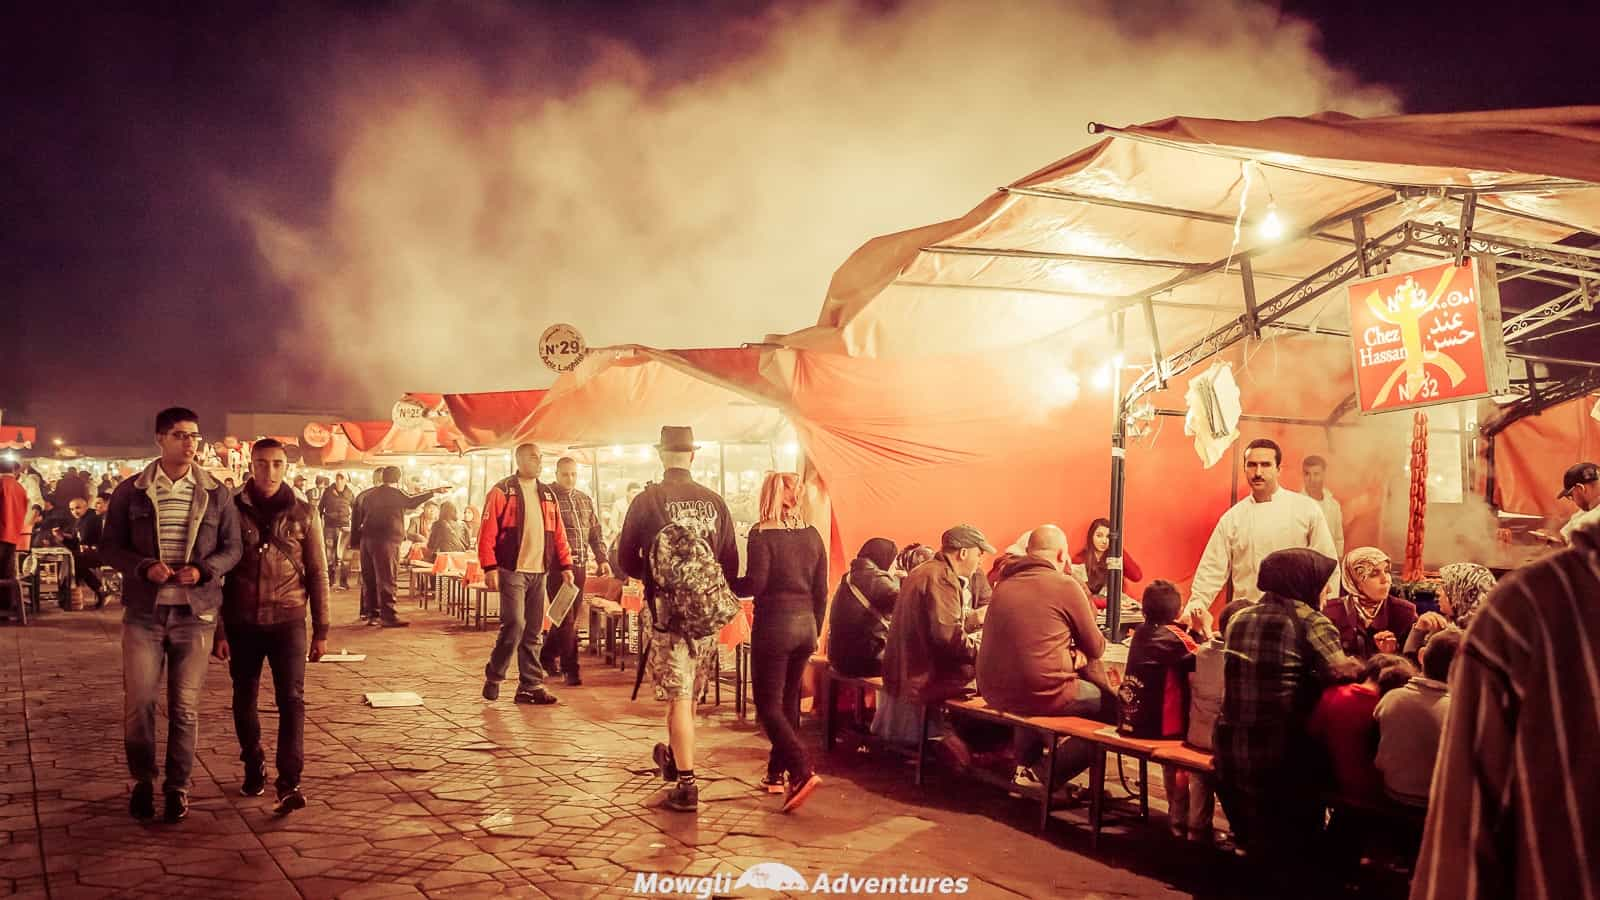 A Local S Guide To Dining Out In Jemaa El Fna Morocco